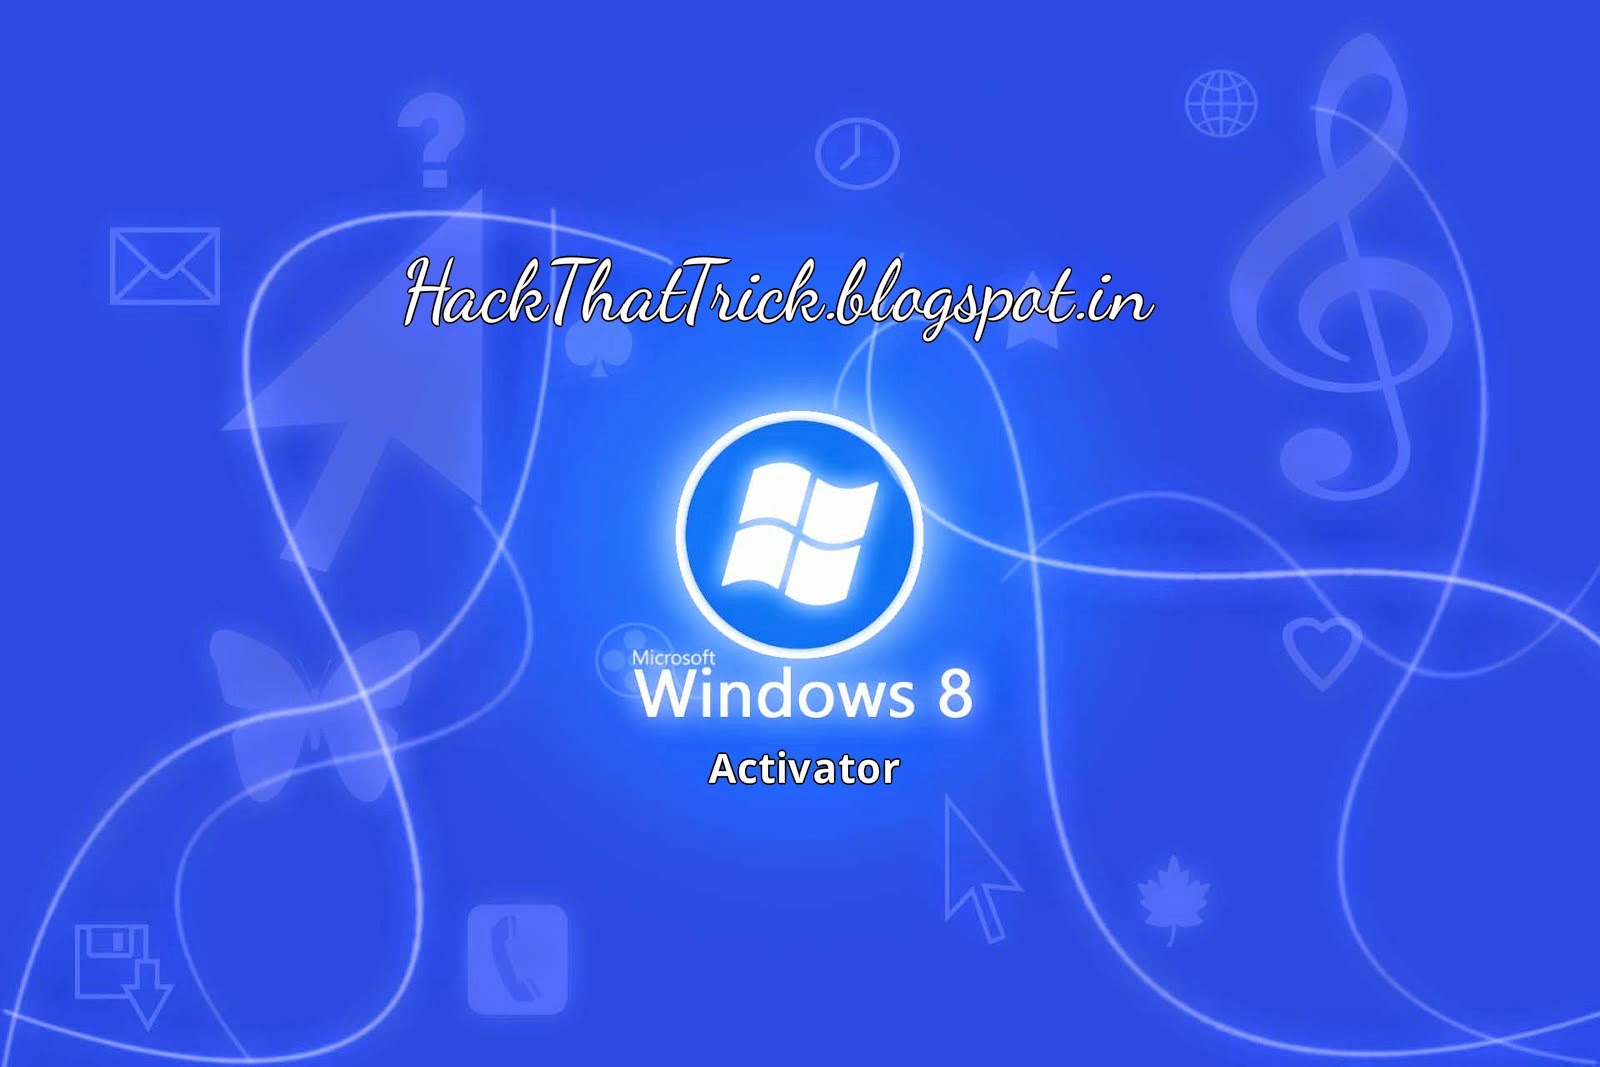 windows 8 activator free download for all version